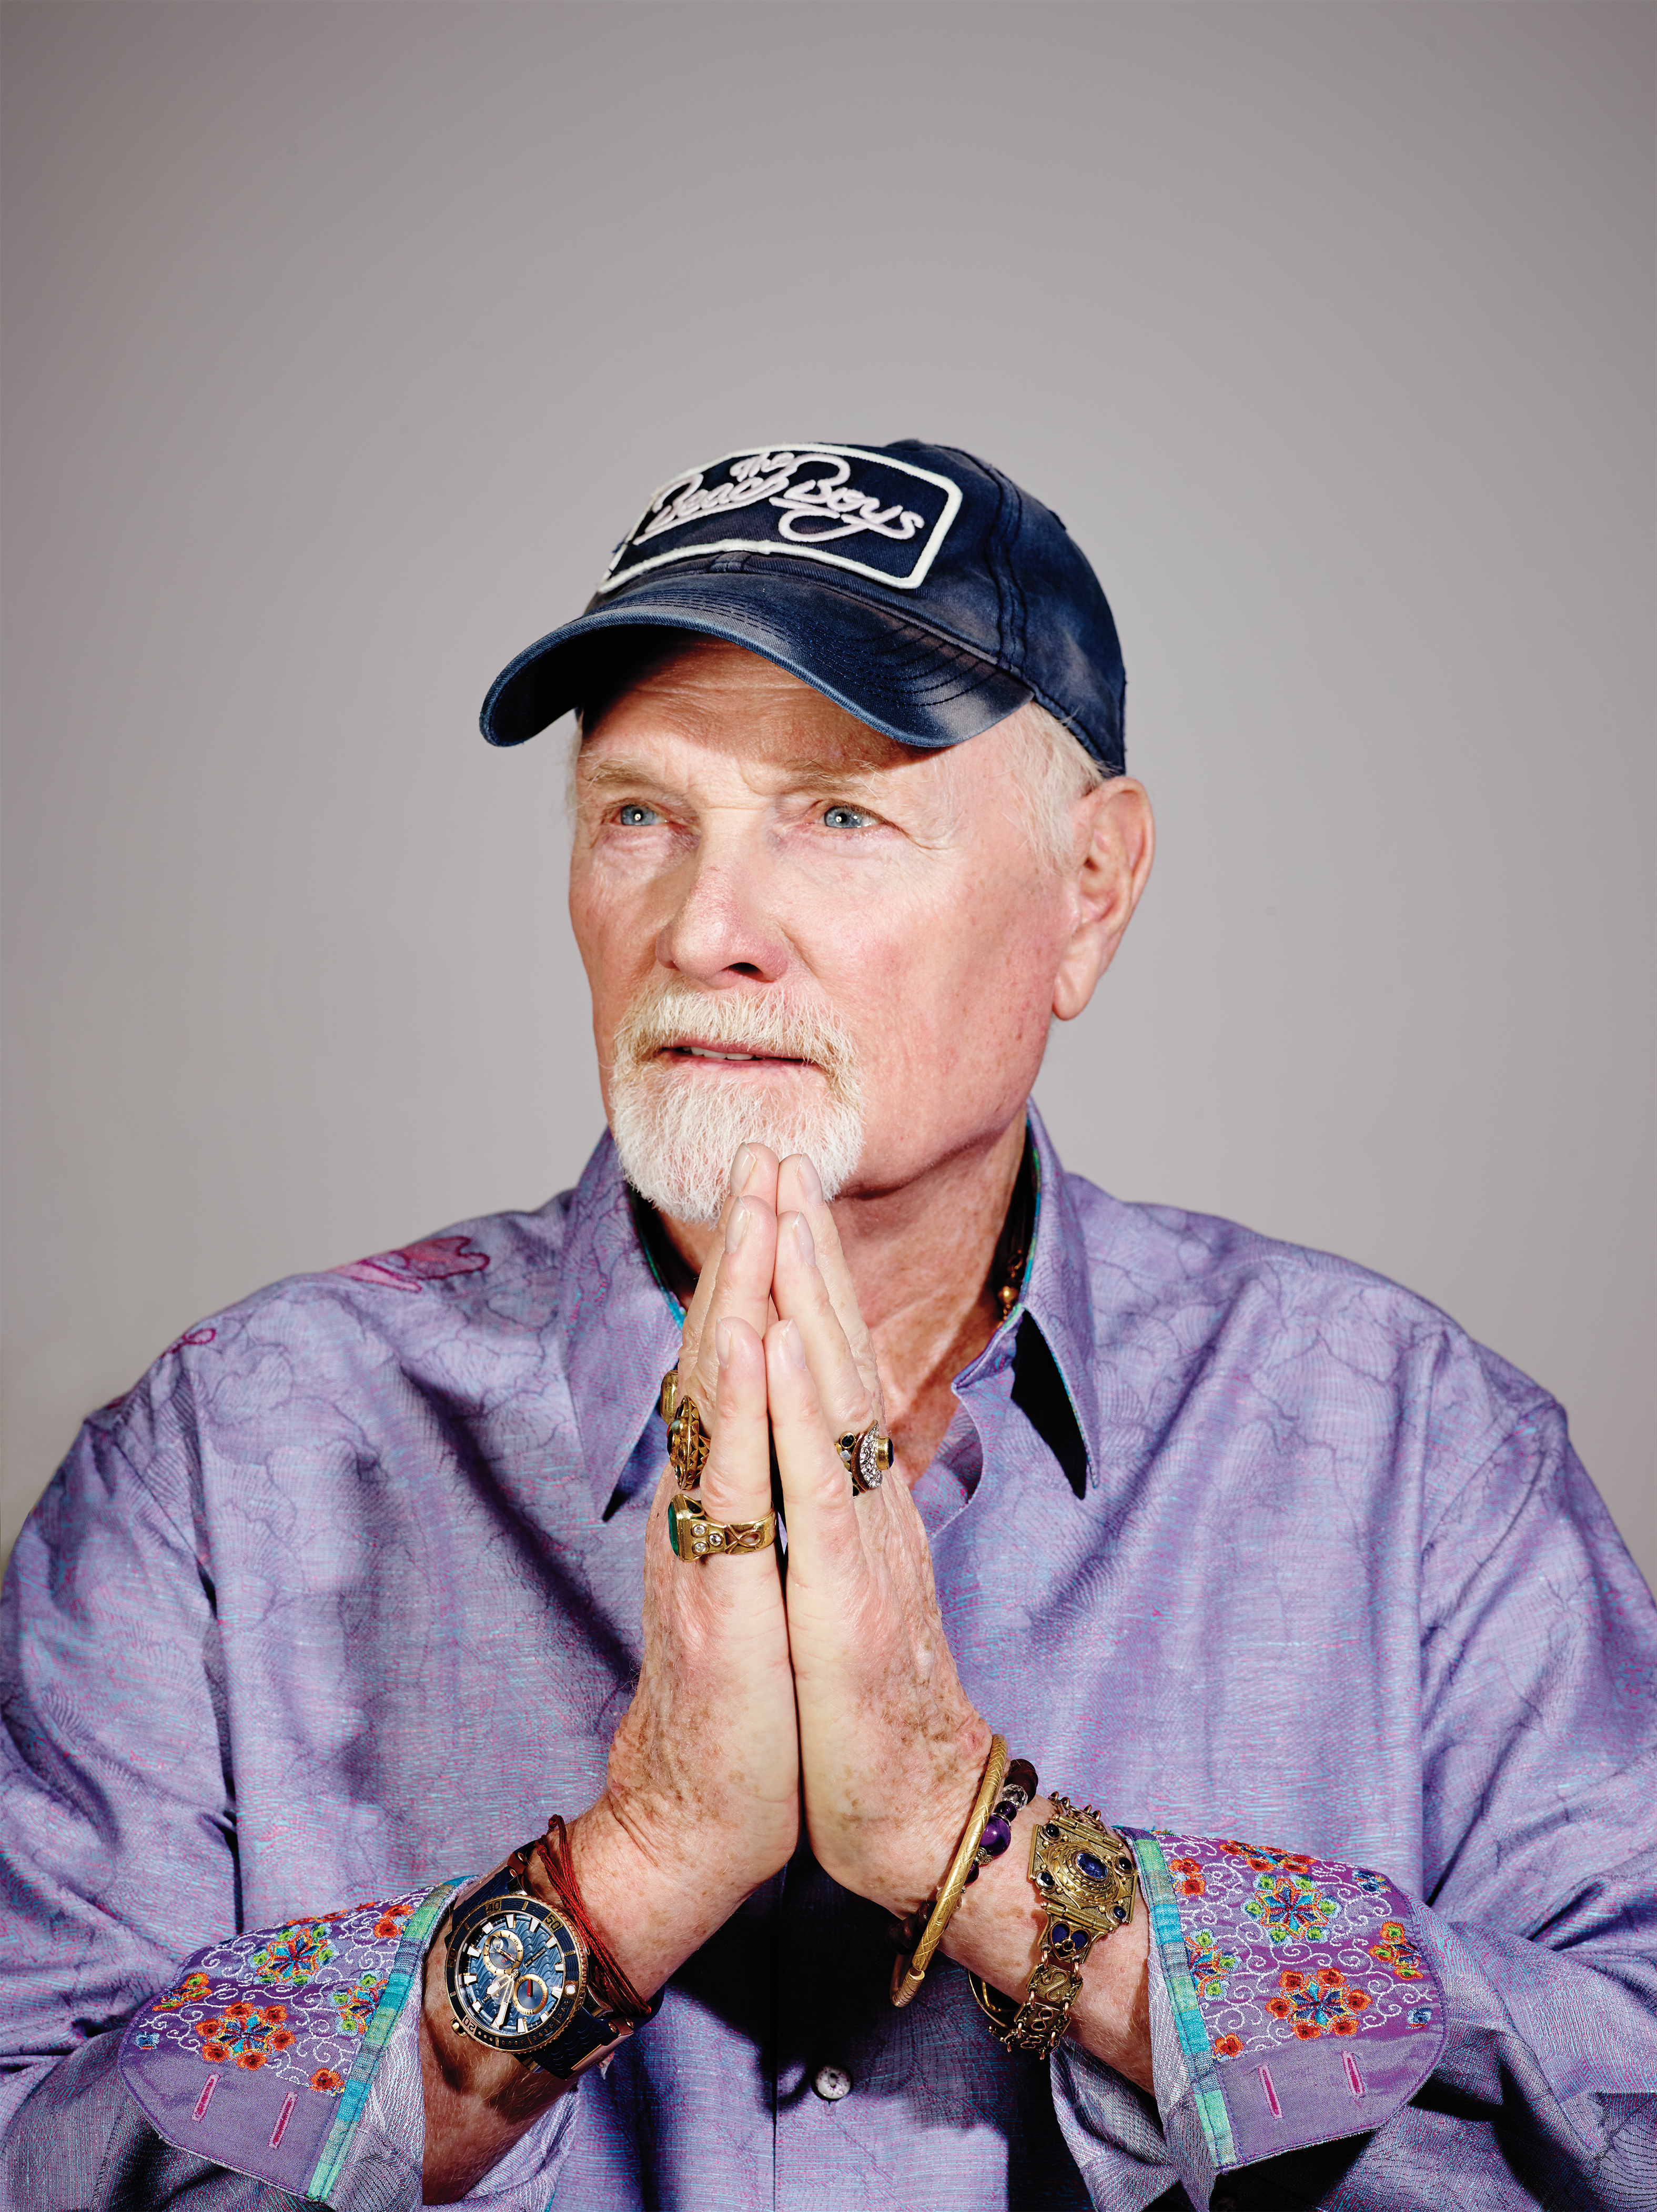 Somewhat Shaky Start For New Cap Times >> The Ballad Of Mike Love Rolling Stone